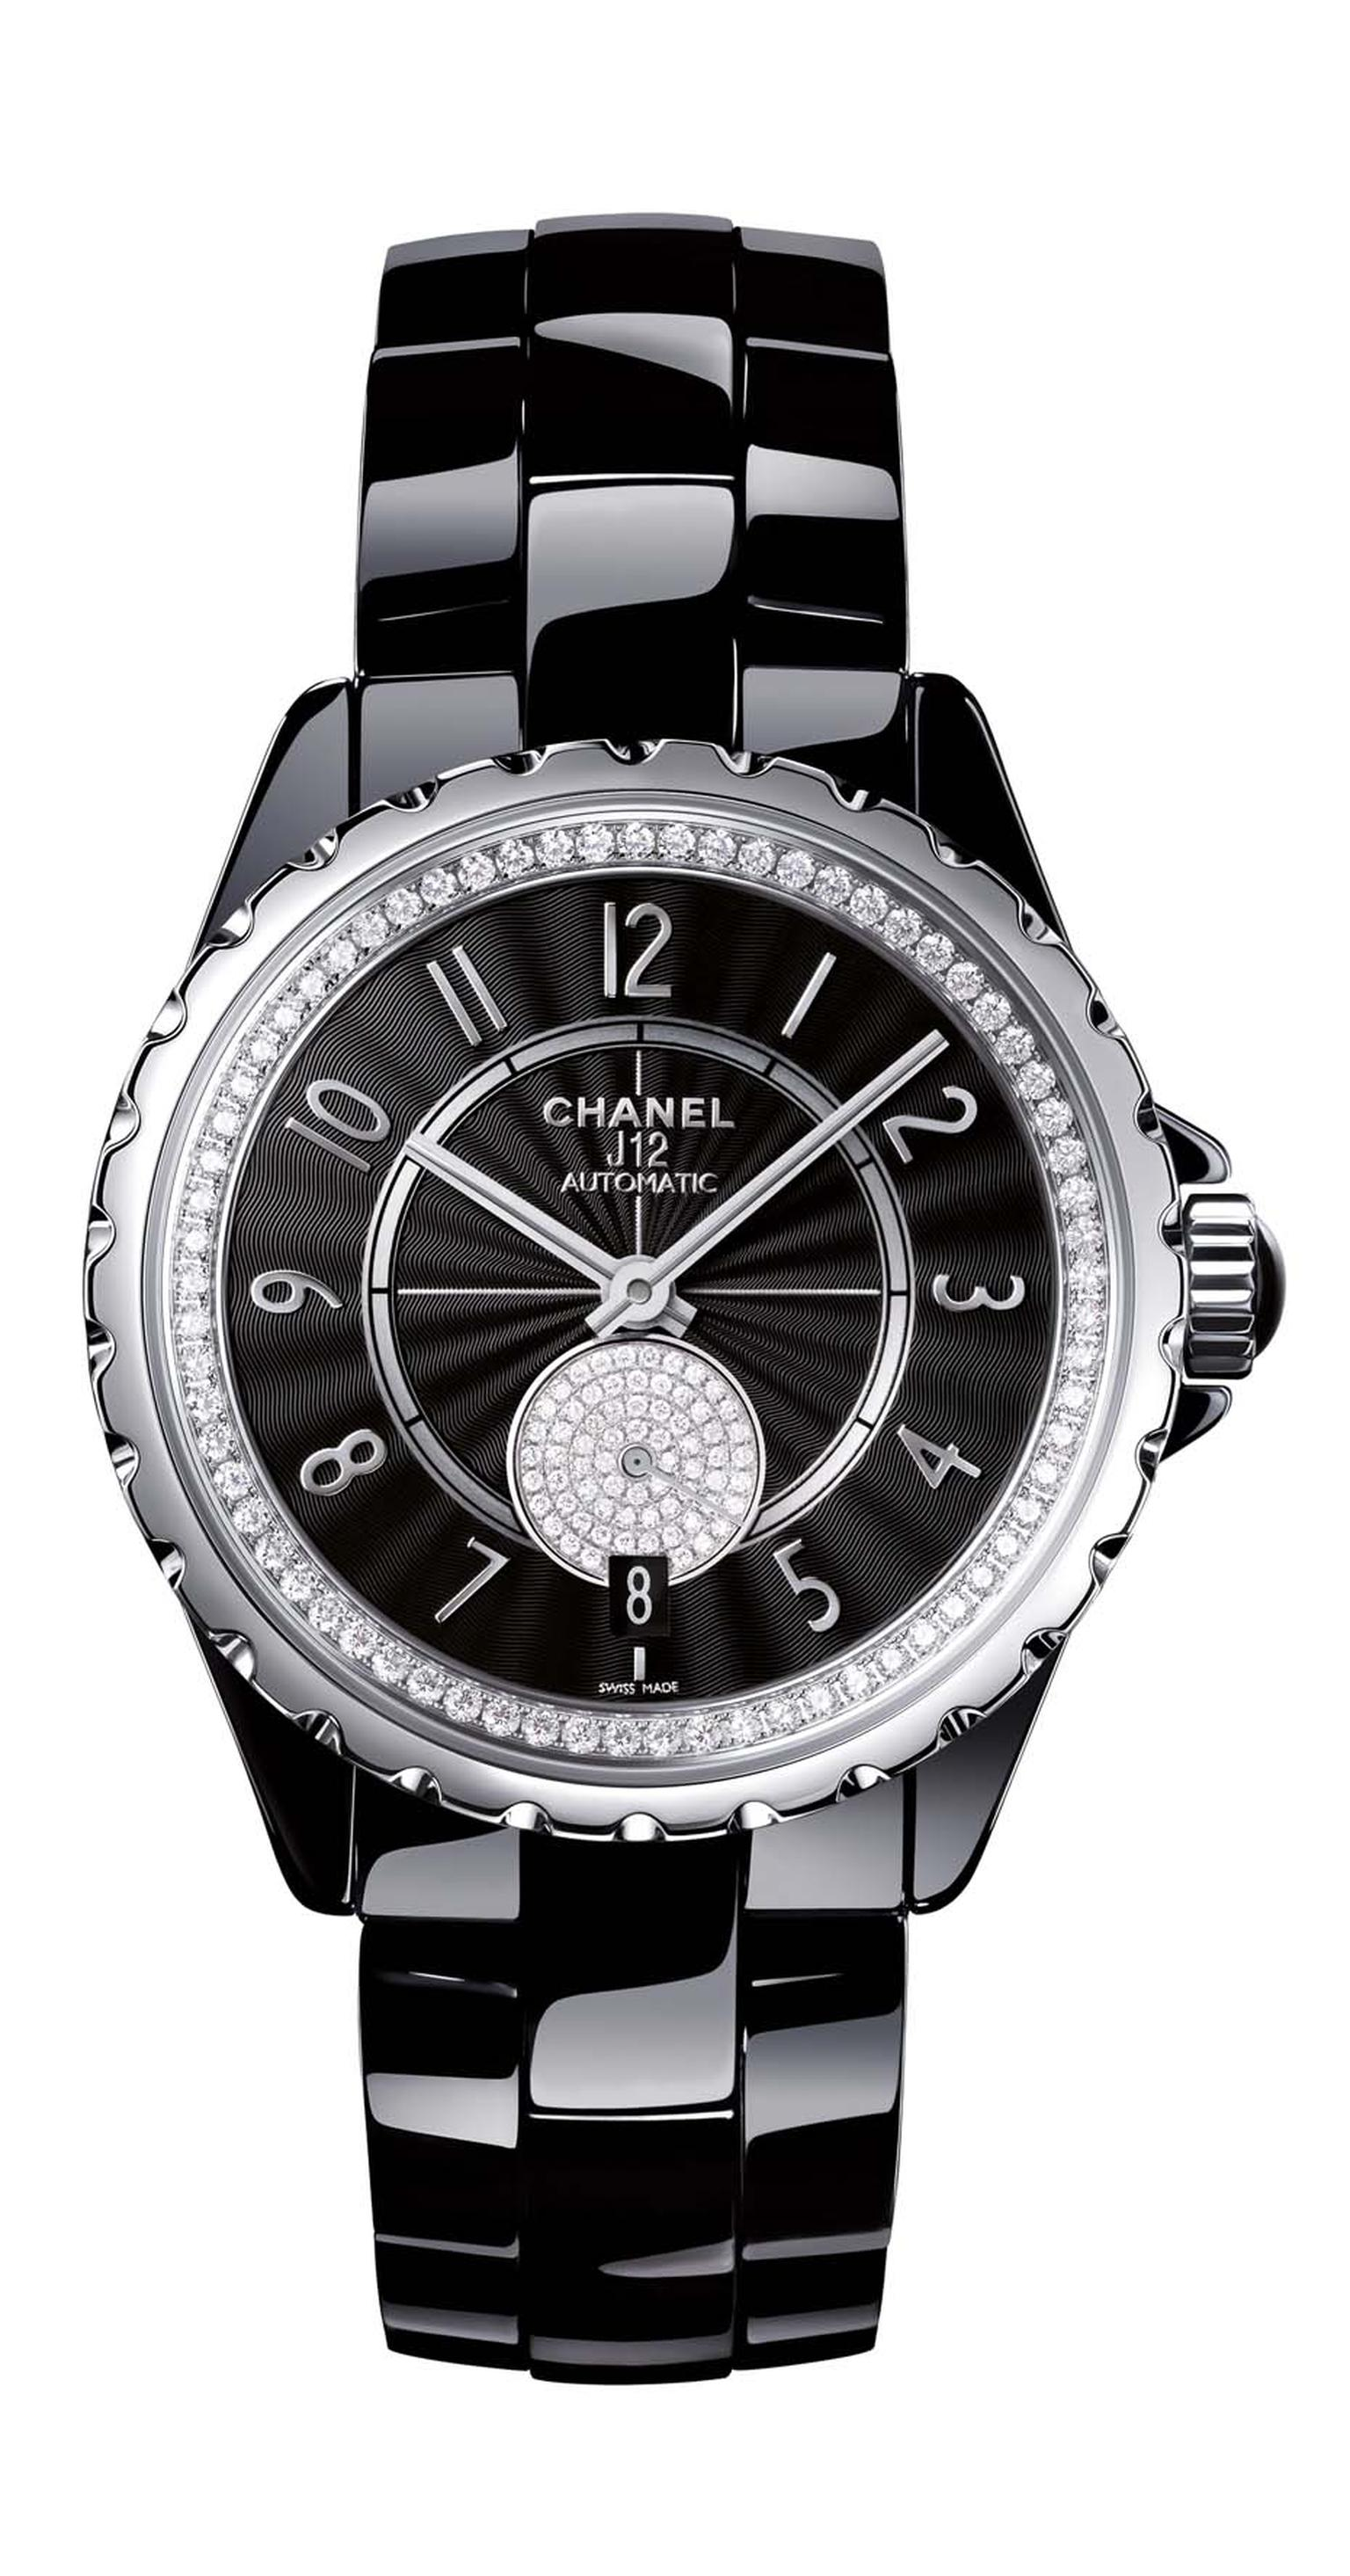 Chanel J12-365 stainless steel watch in black high-tech ceramic featuring a Guilloche´-finished black dial and diamonds within the inner bezel and small seconds.